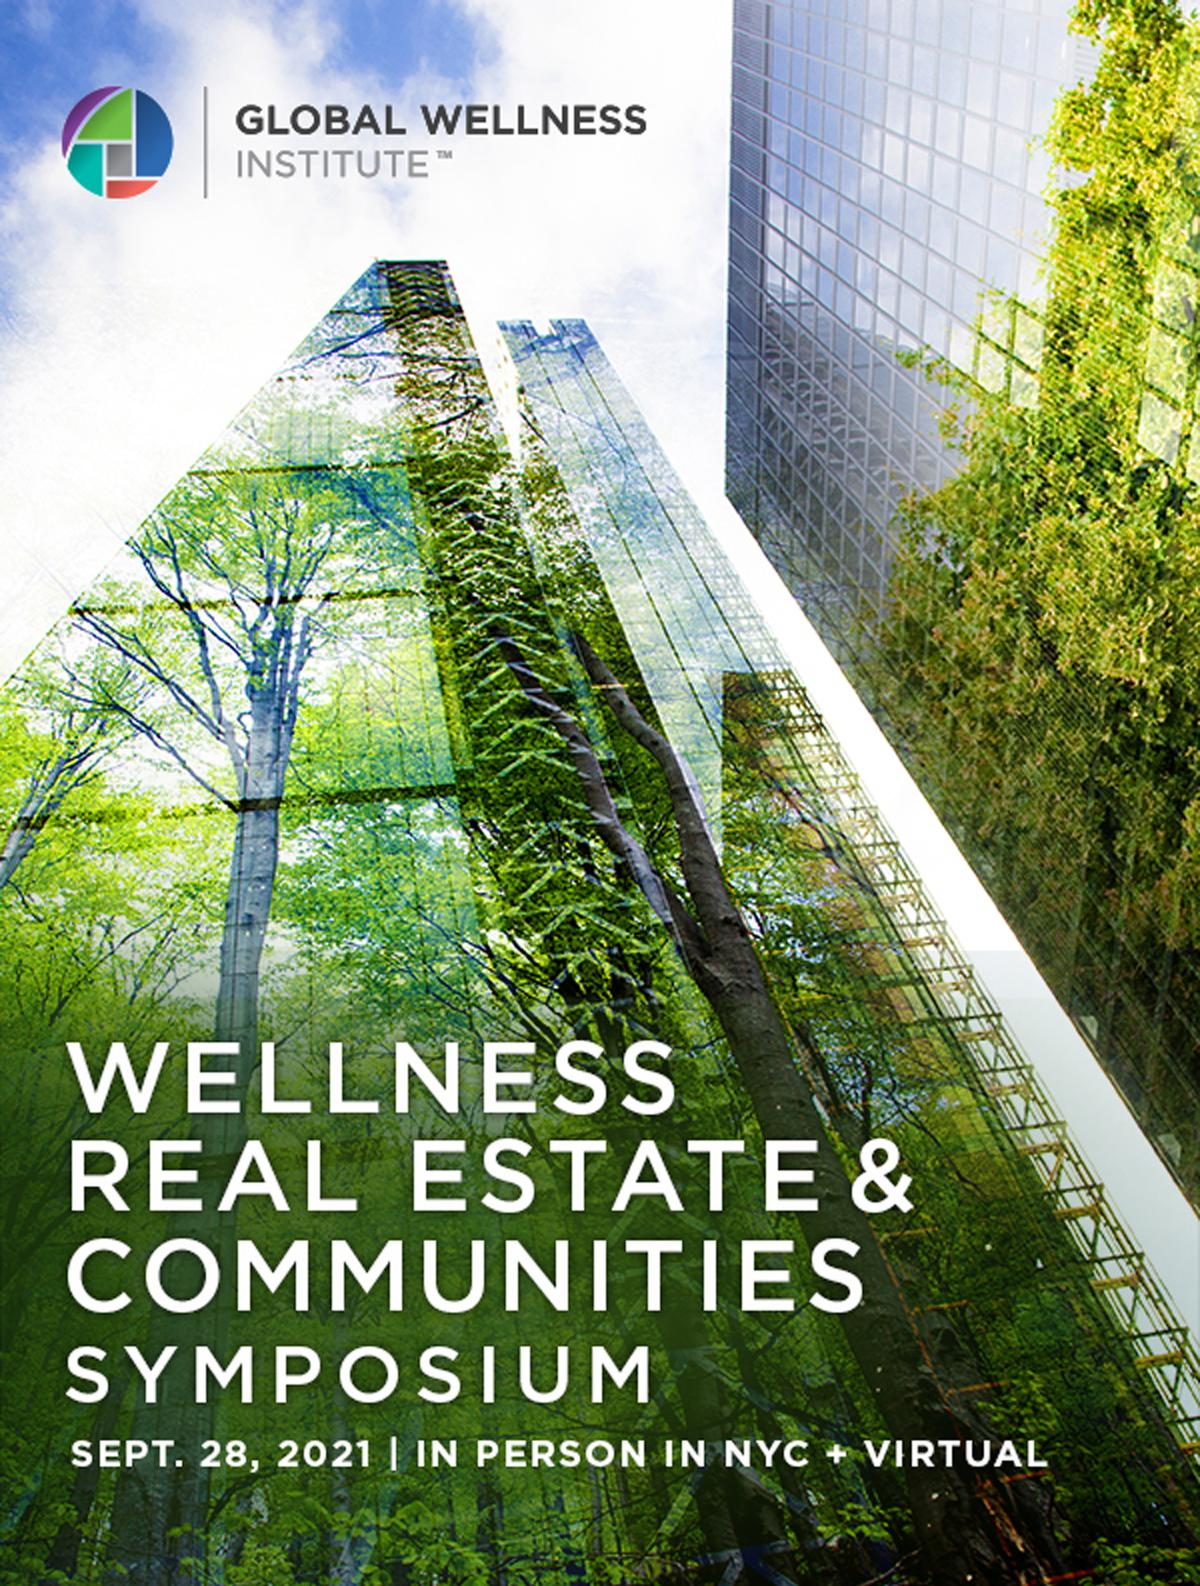 Global Wellness Institute to hold inaugural Wellness Real Estate & Communities Symposium